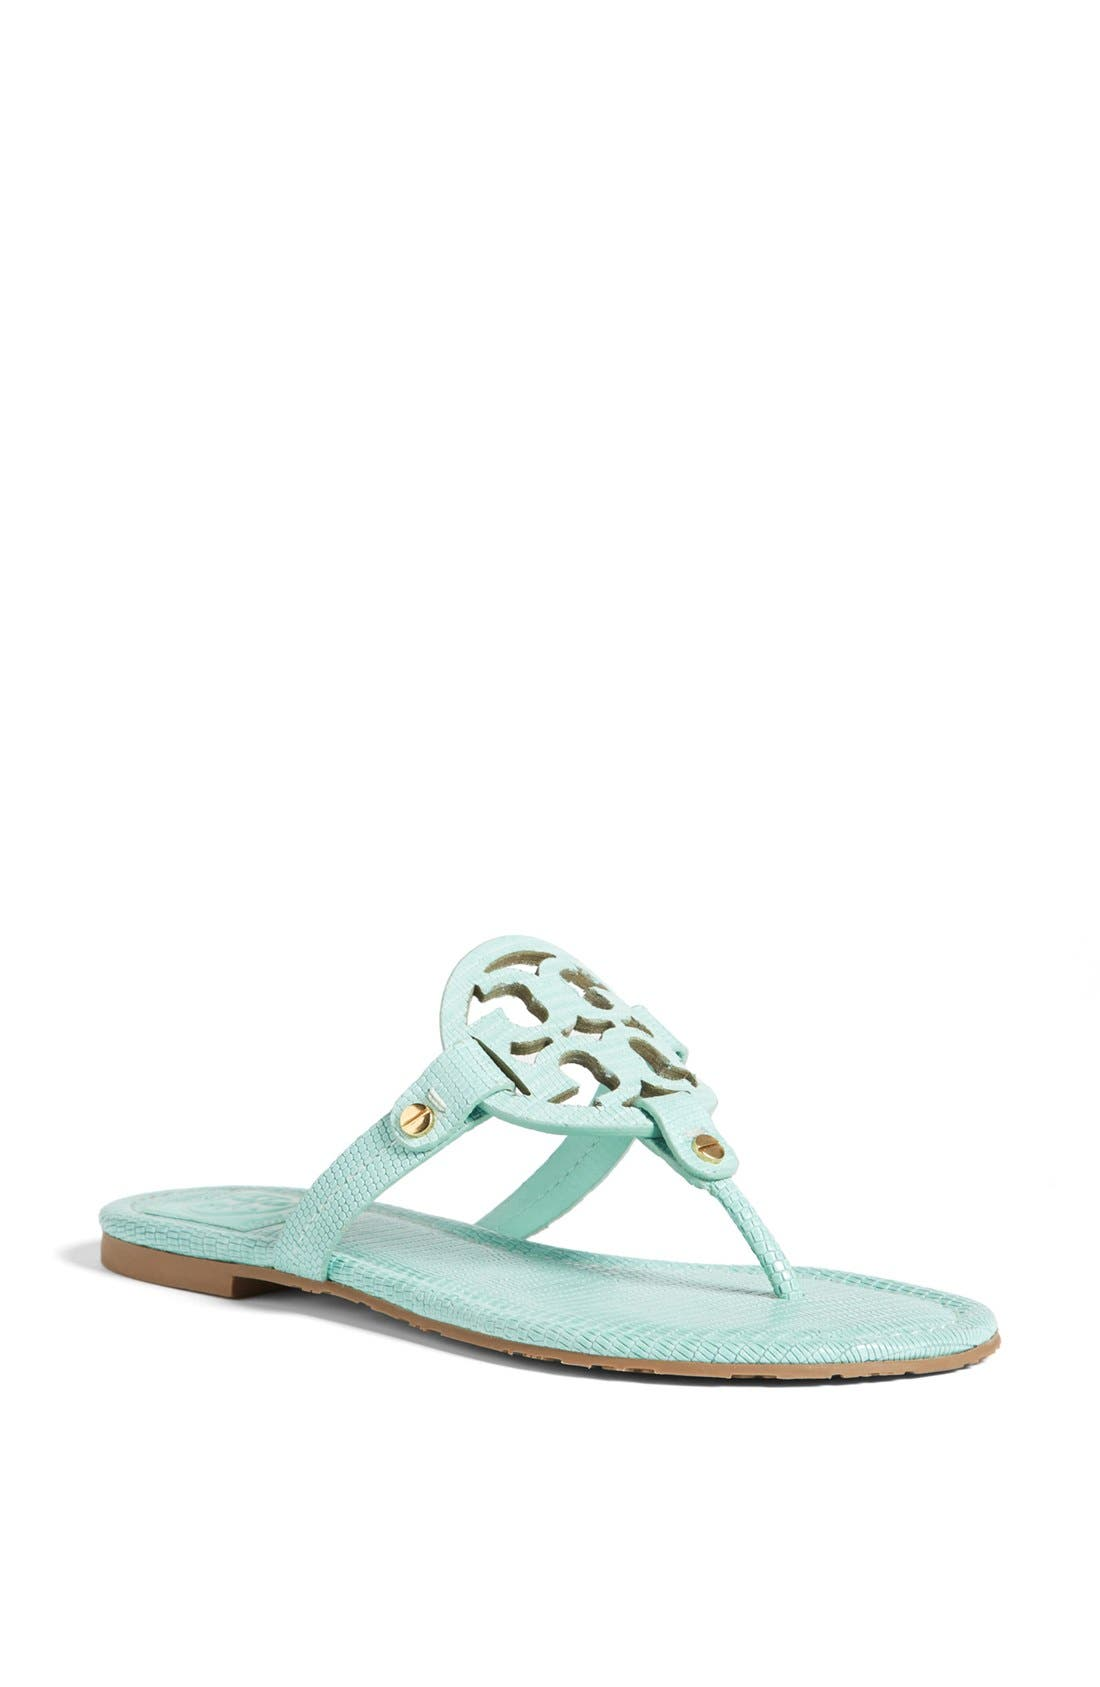 Alternate Image 1 Selected - Tory Burch 'Miller' Sandal (Nordstrom Exclusive Color)